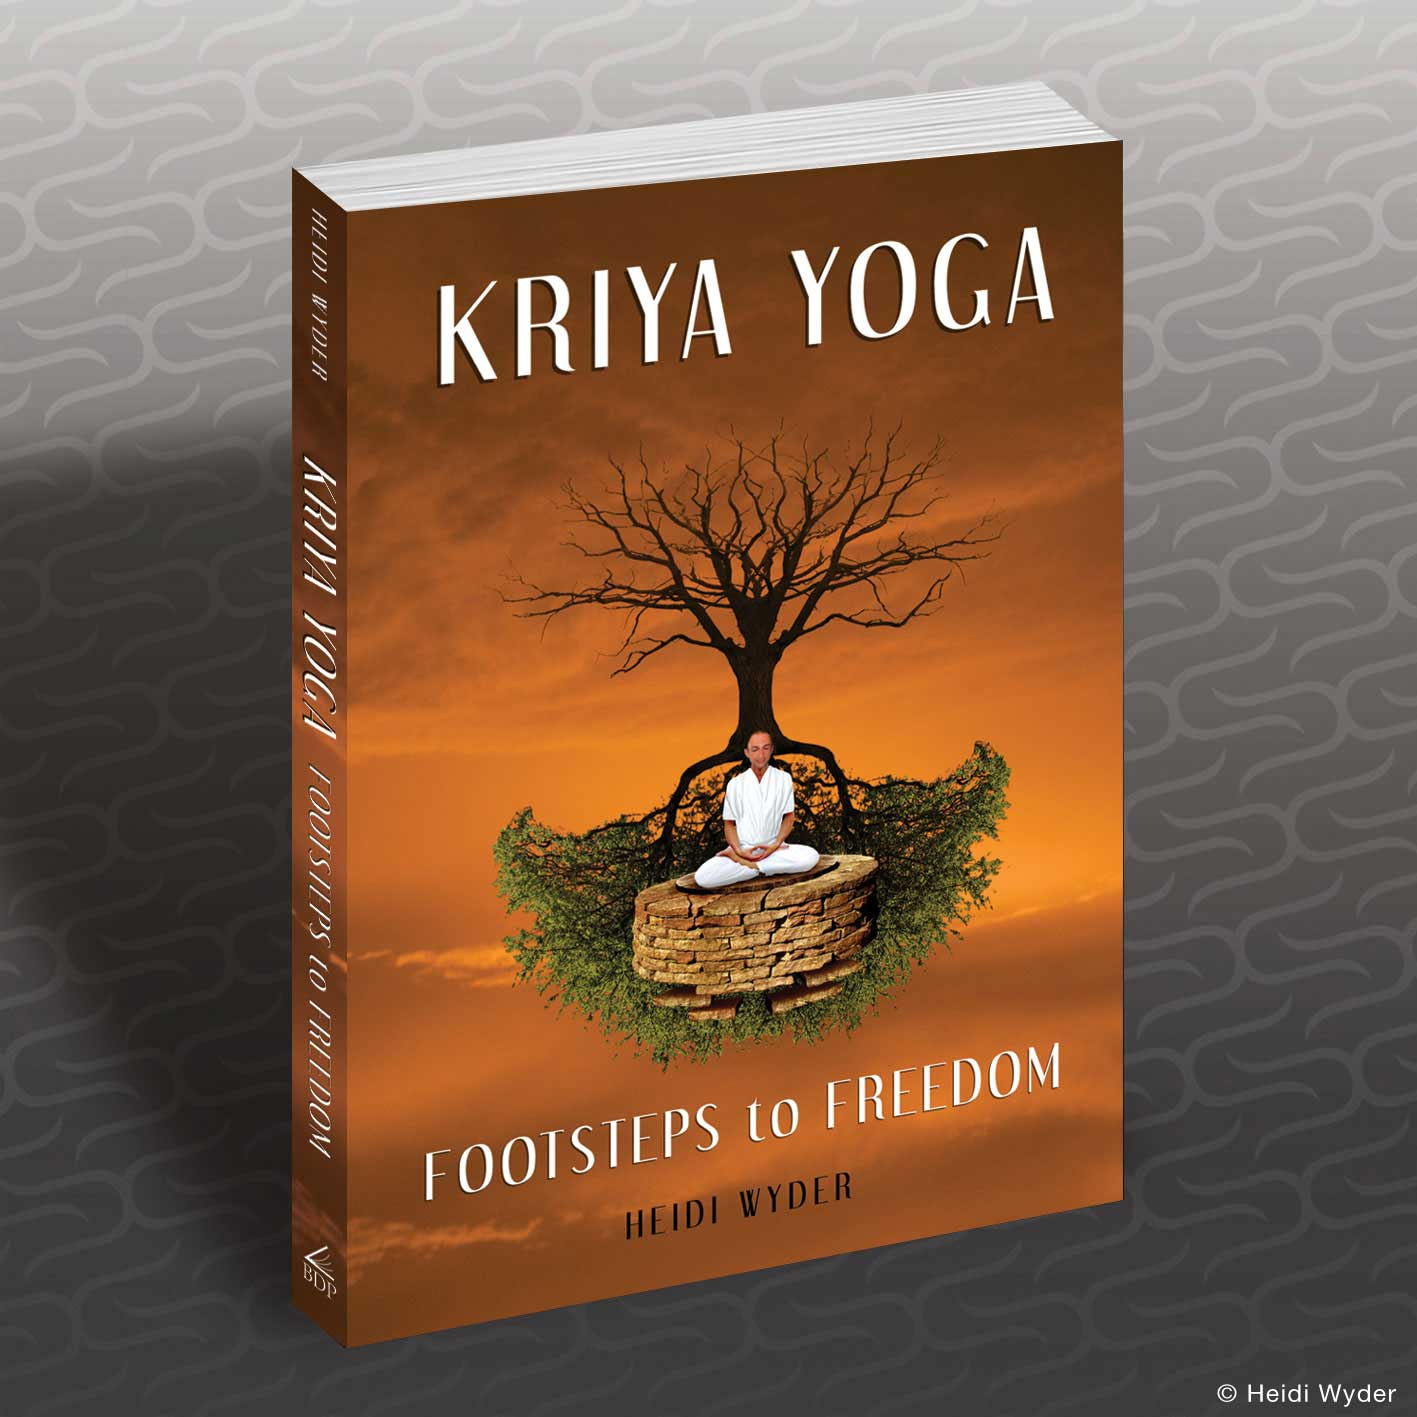 kriya yoga Divya babaji sushumna kriyayoga is a simplified version of traditional kriya yoga which is a very powerful and ancient meditation technique.